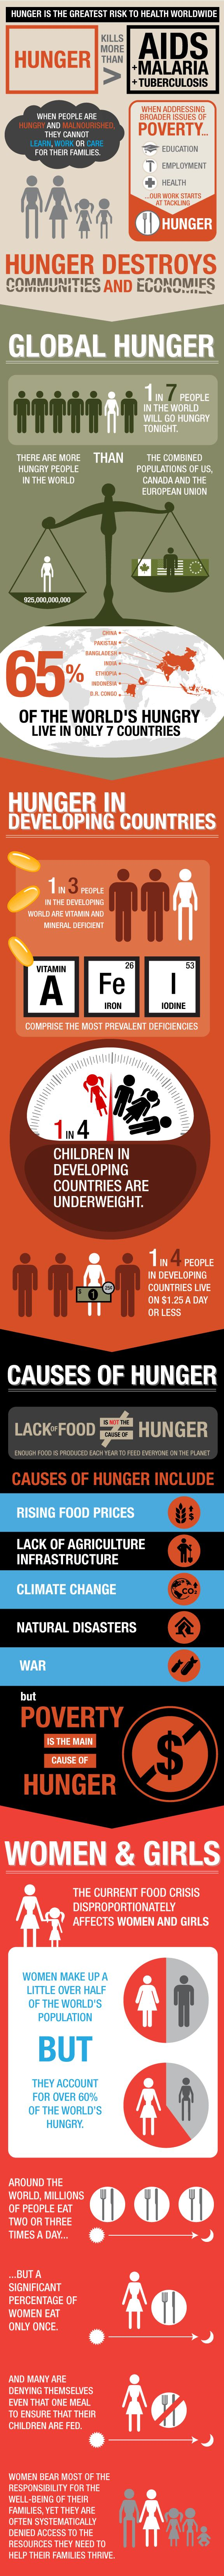 Hunger is the greatest risk to health worldwide. Useful and enlightening information from The FEED Foundation.